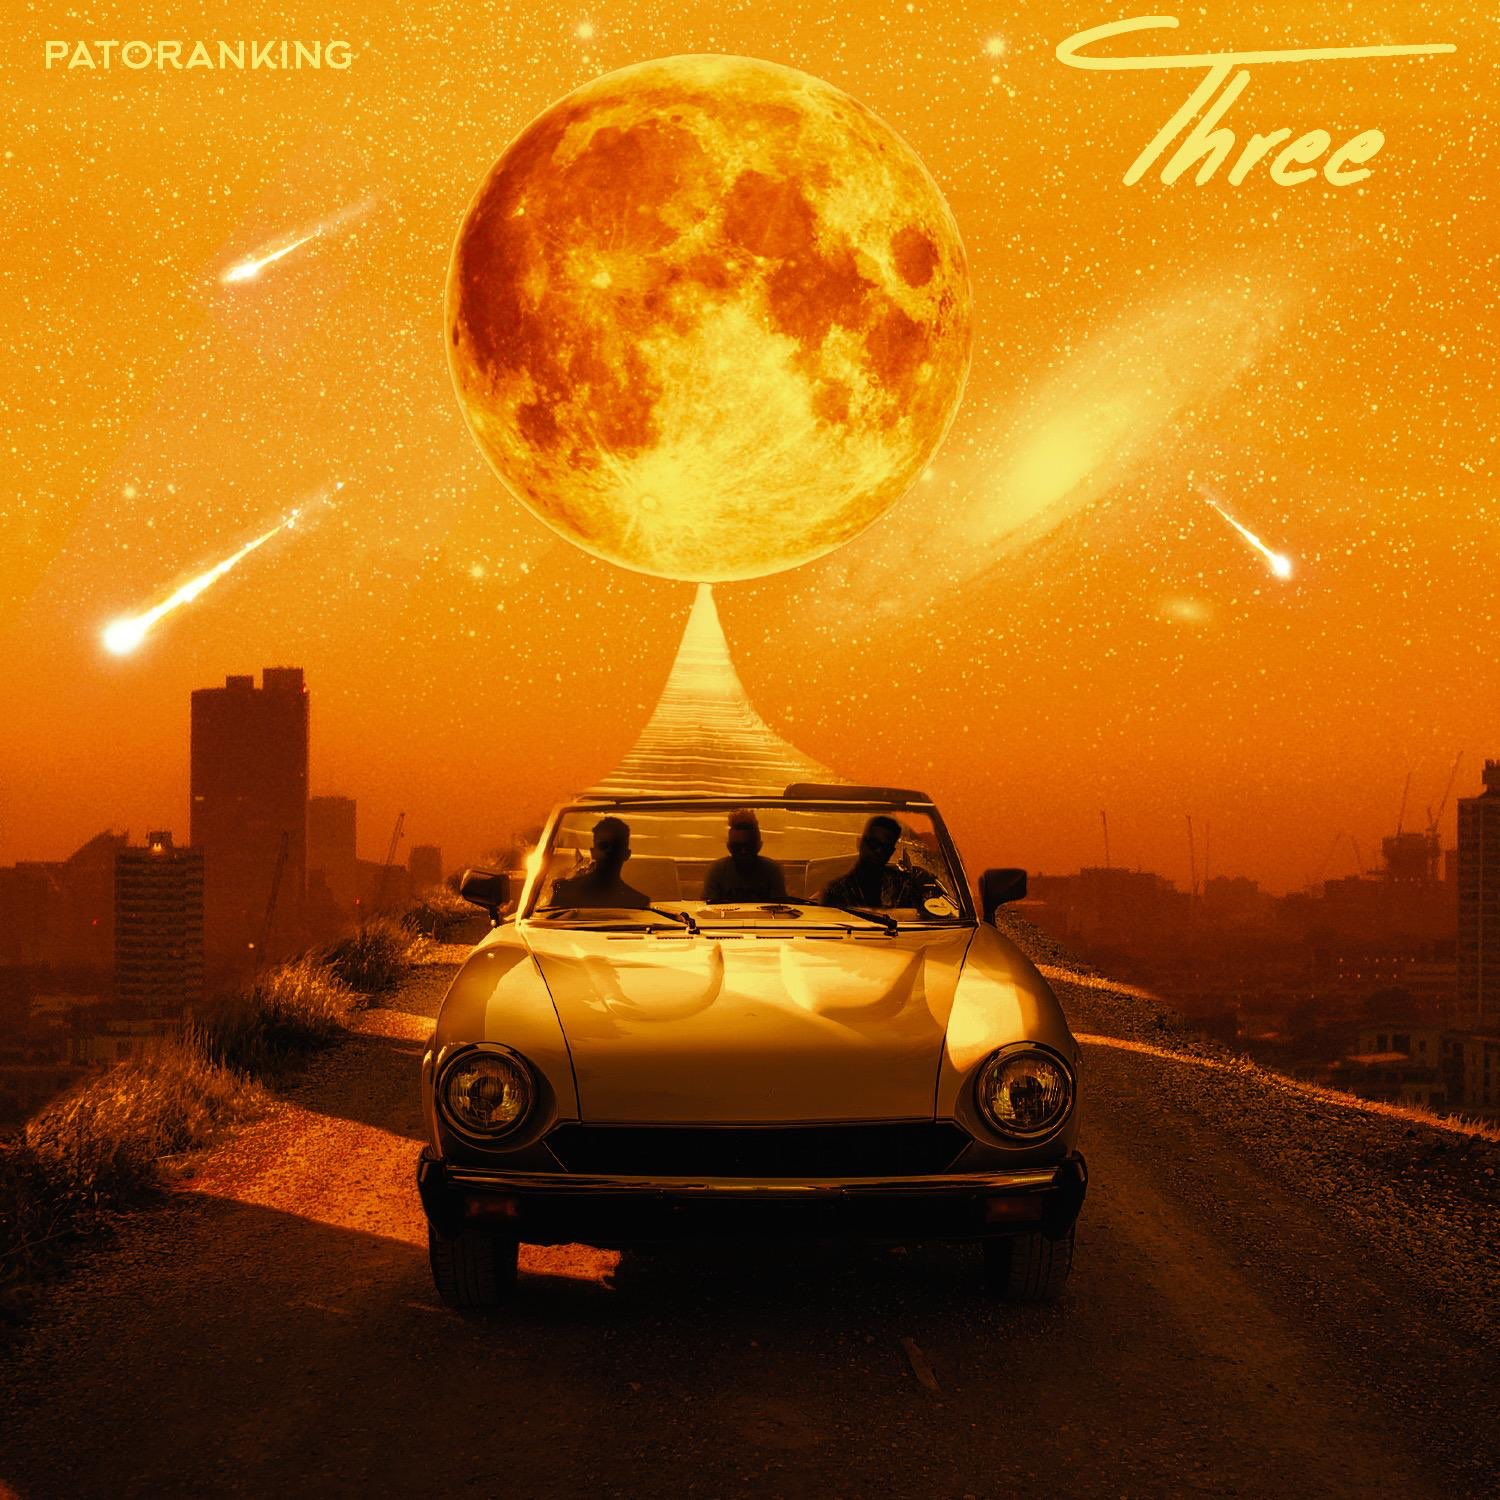 Album art review: Did Patoranking just share the cover to Three The Album his new studio LP that drops in weeks?